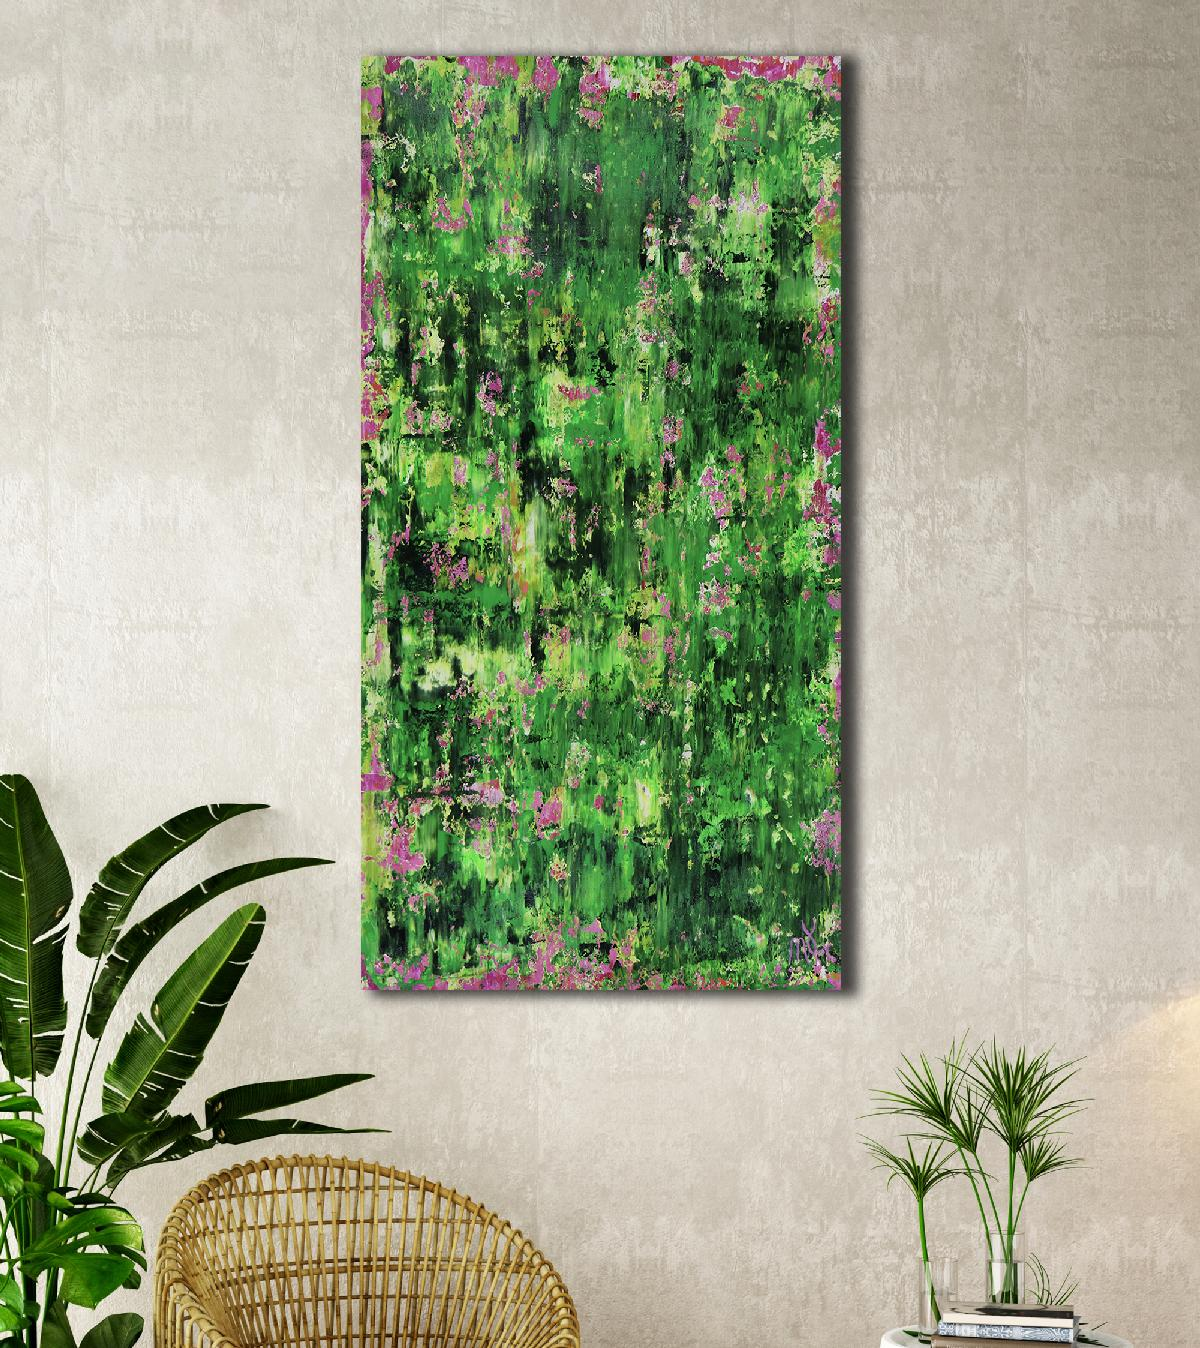 Room View - Verdor (A Romance With Green) 3 by Nestor Toro